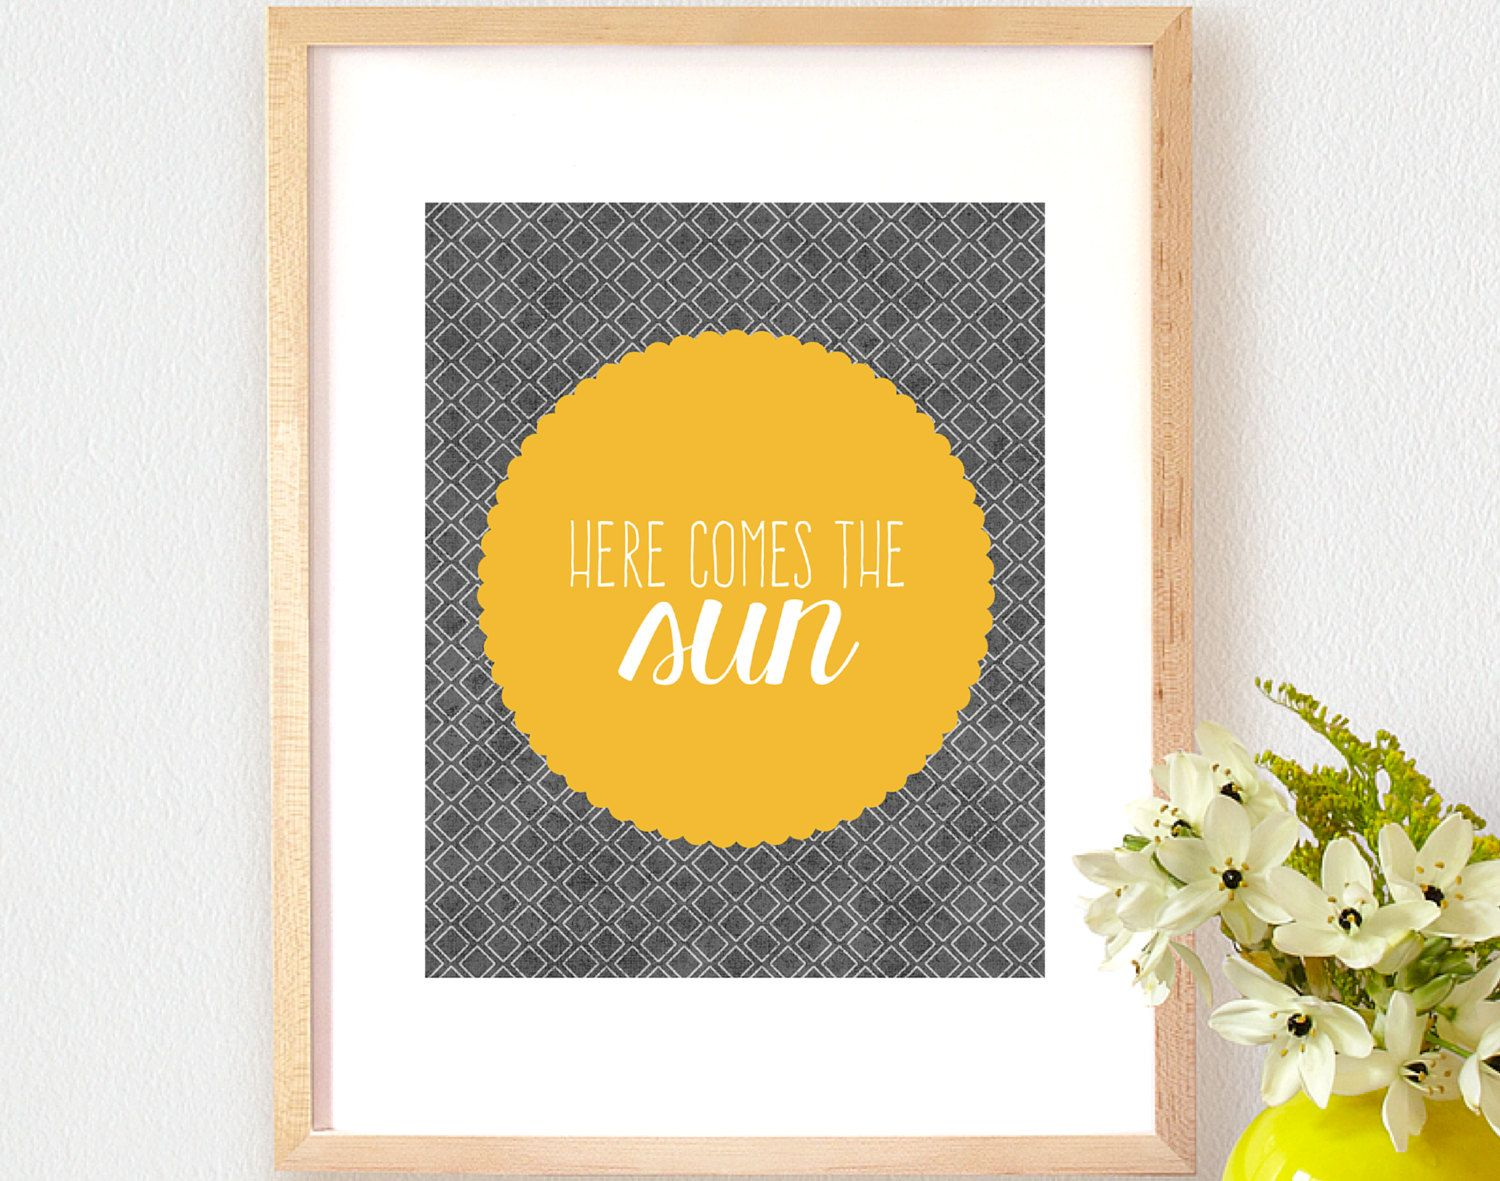 Art Print OR Canvas, The Beatles, Here Comes The Sun, Abbey Road ...